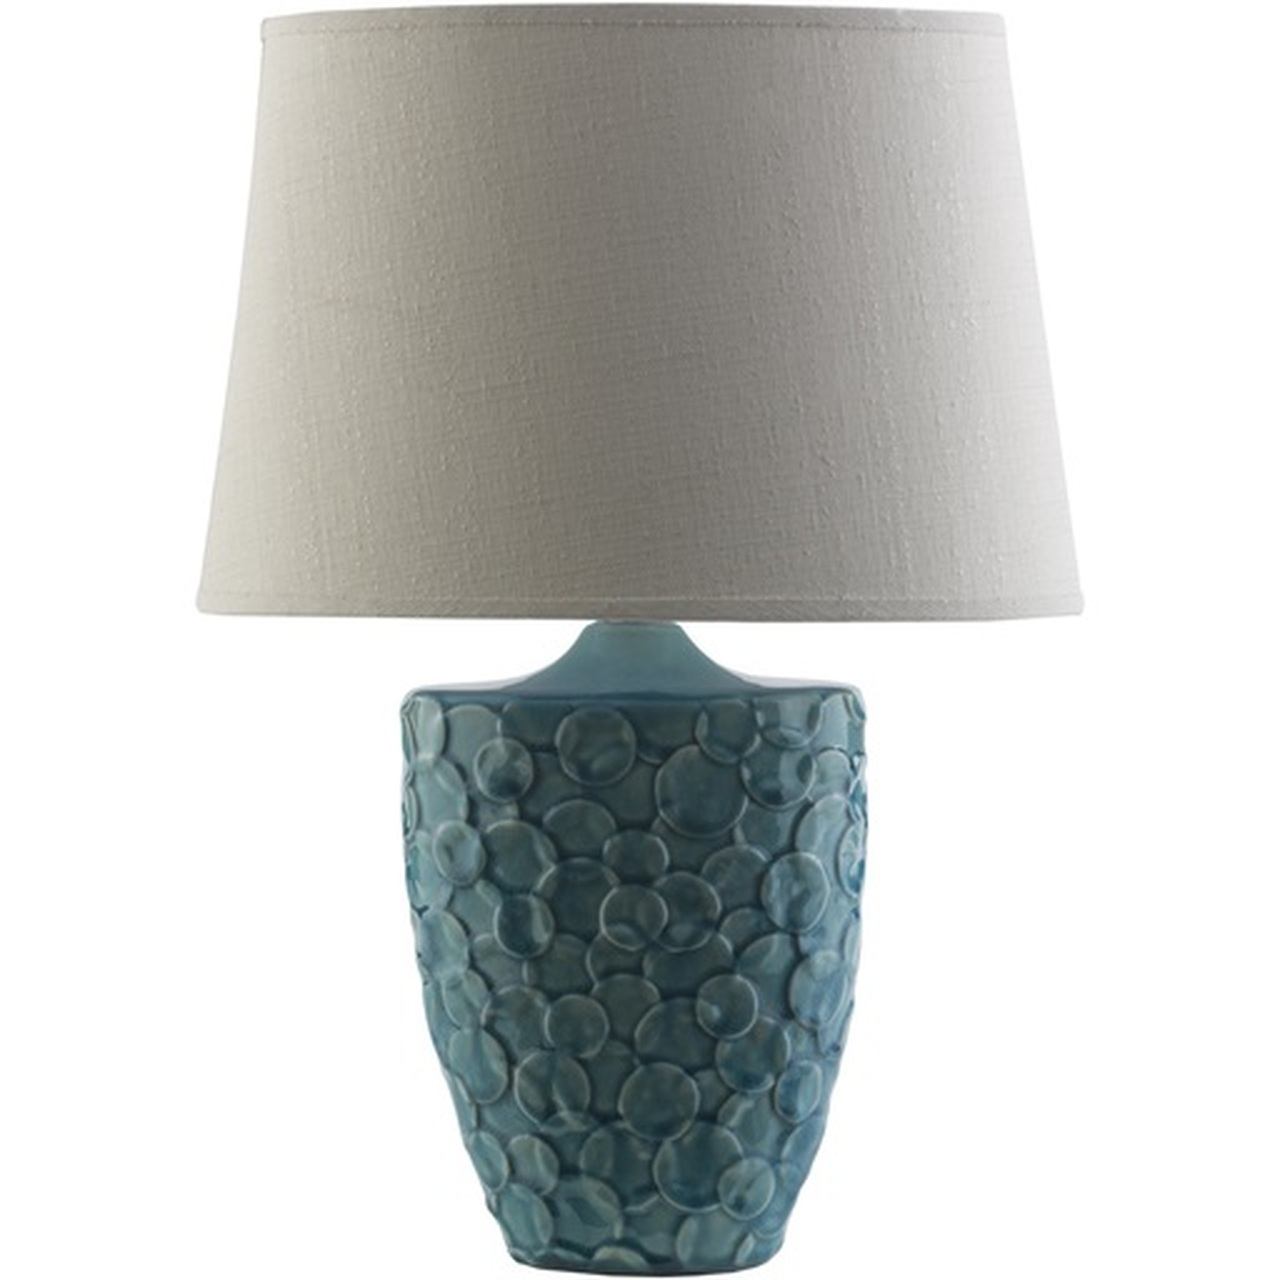 19 75 Contemporary Teal Ceramic Table Lamp With Bell Shaped Shade